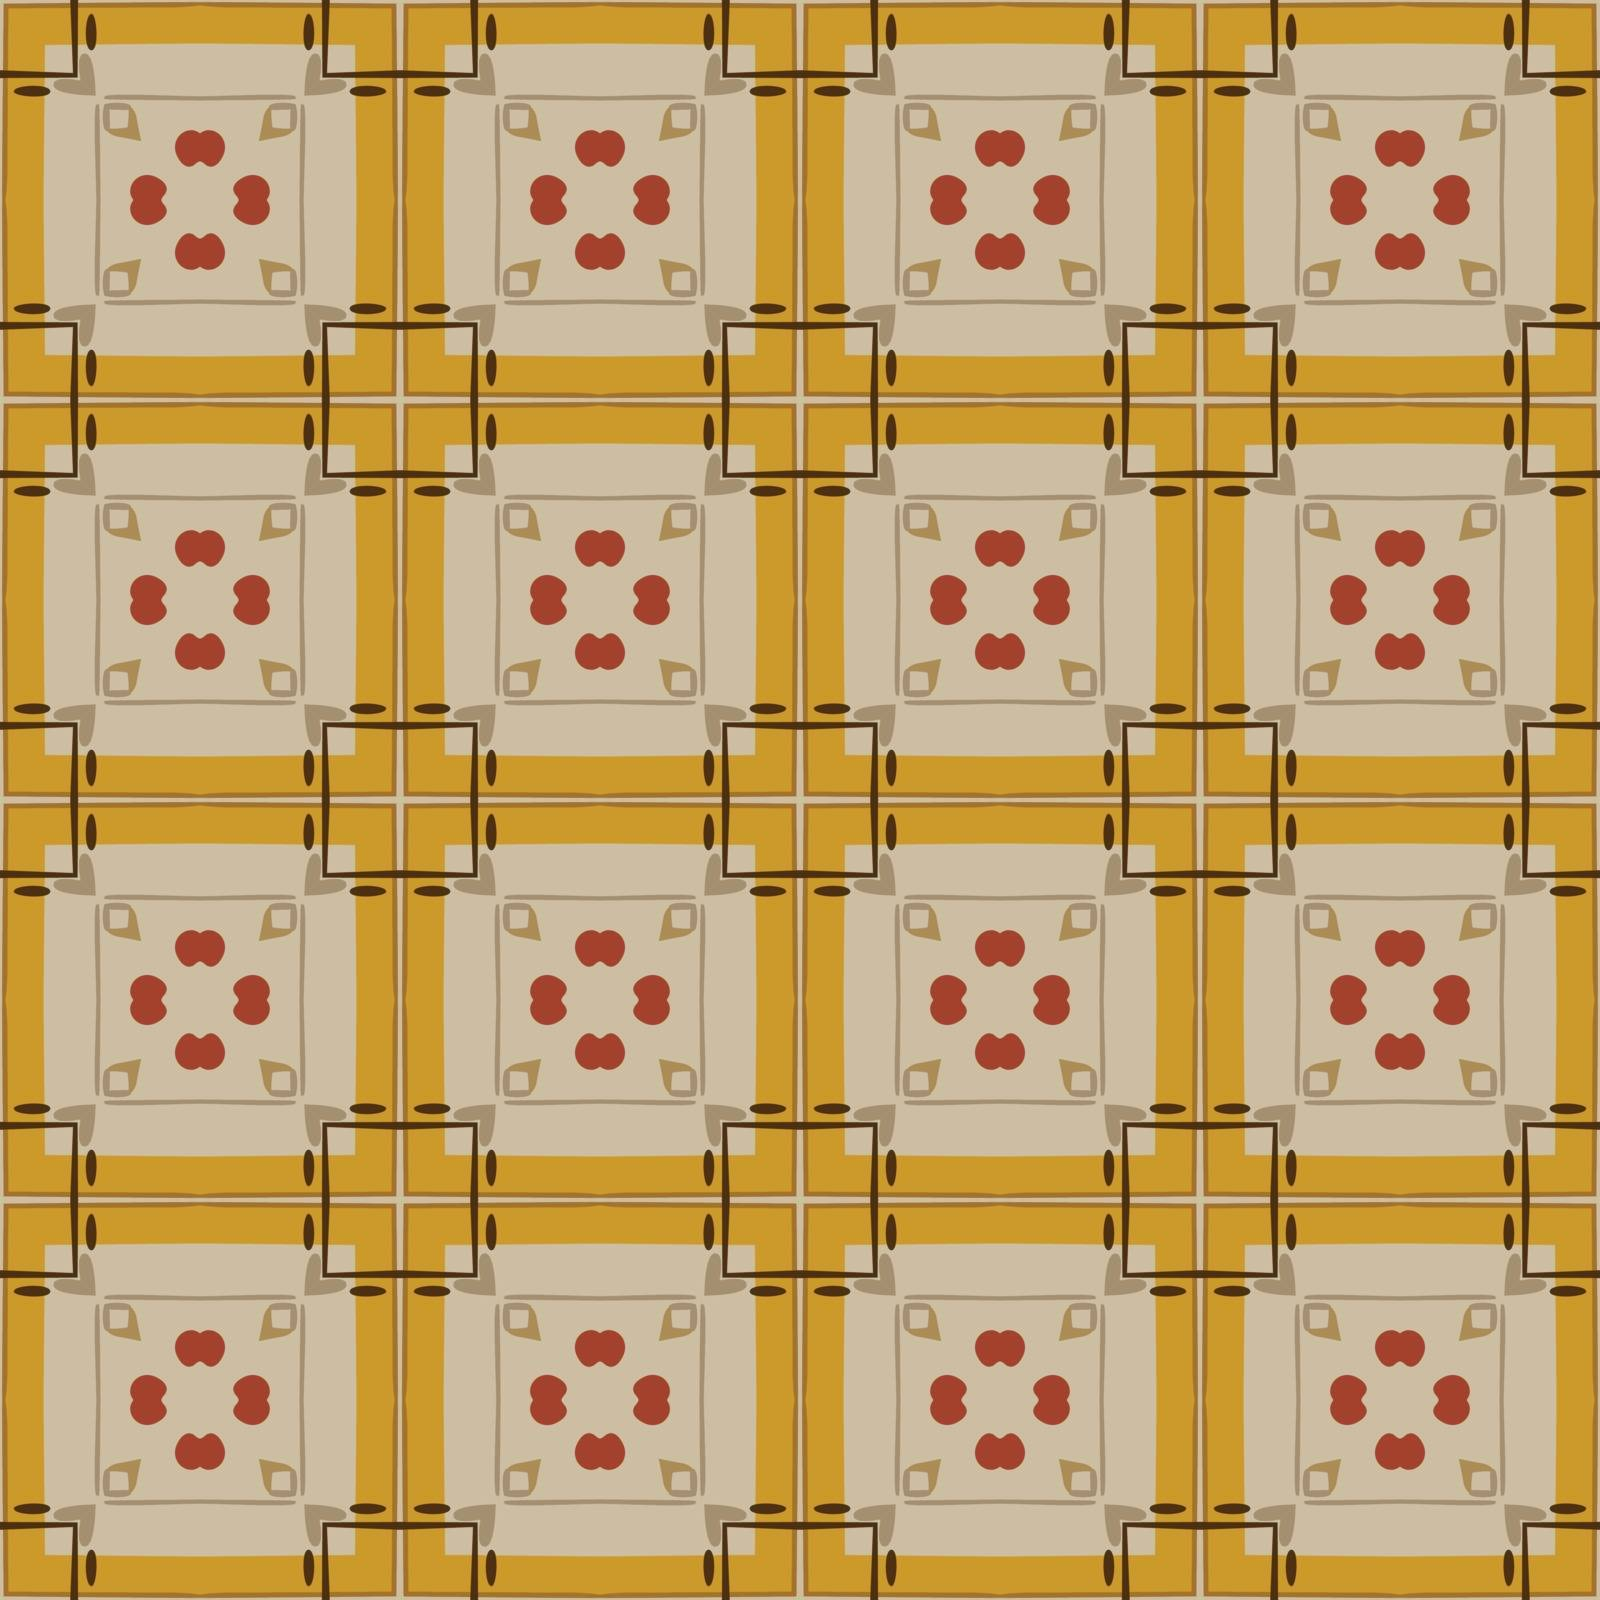 Seamless illustrated pattern made of abstract elements in beige,orange, gray and brown